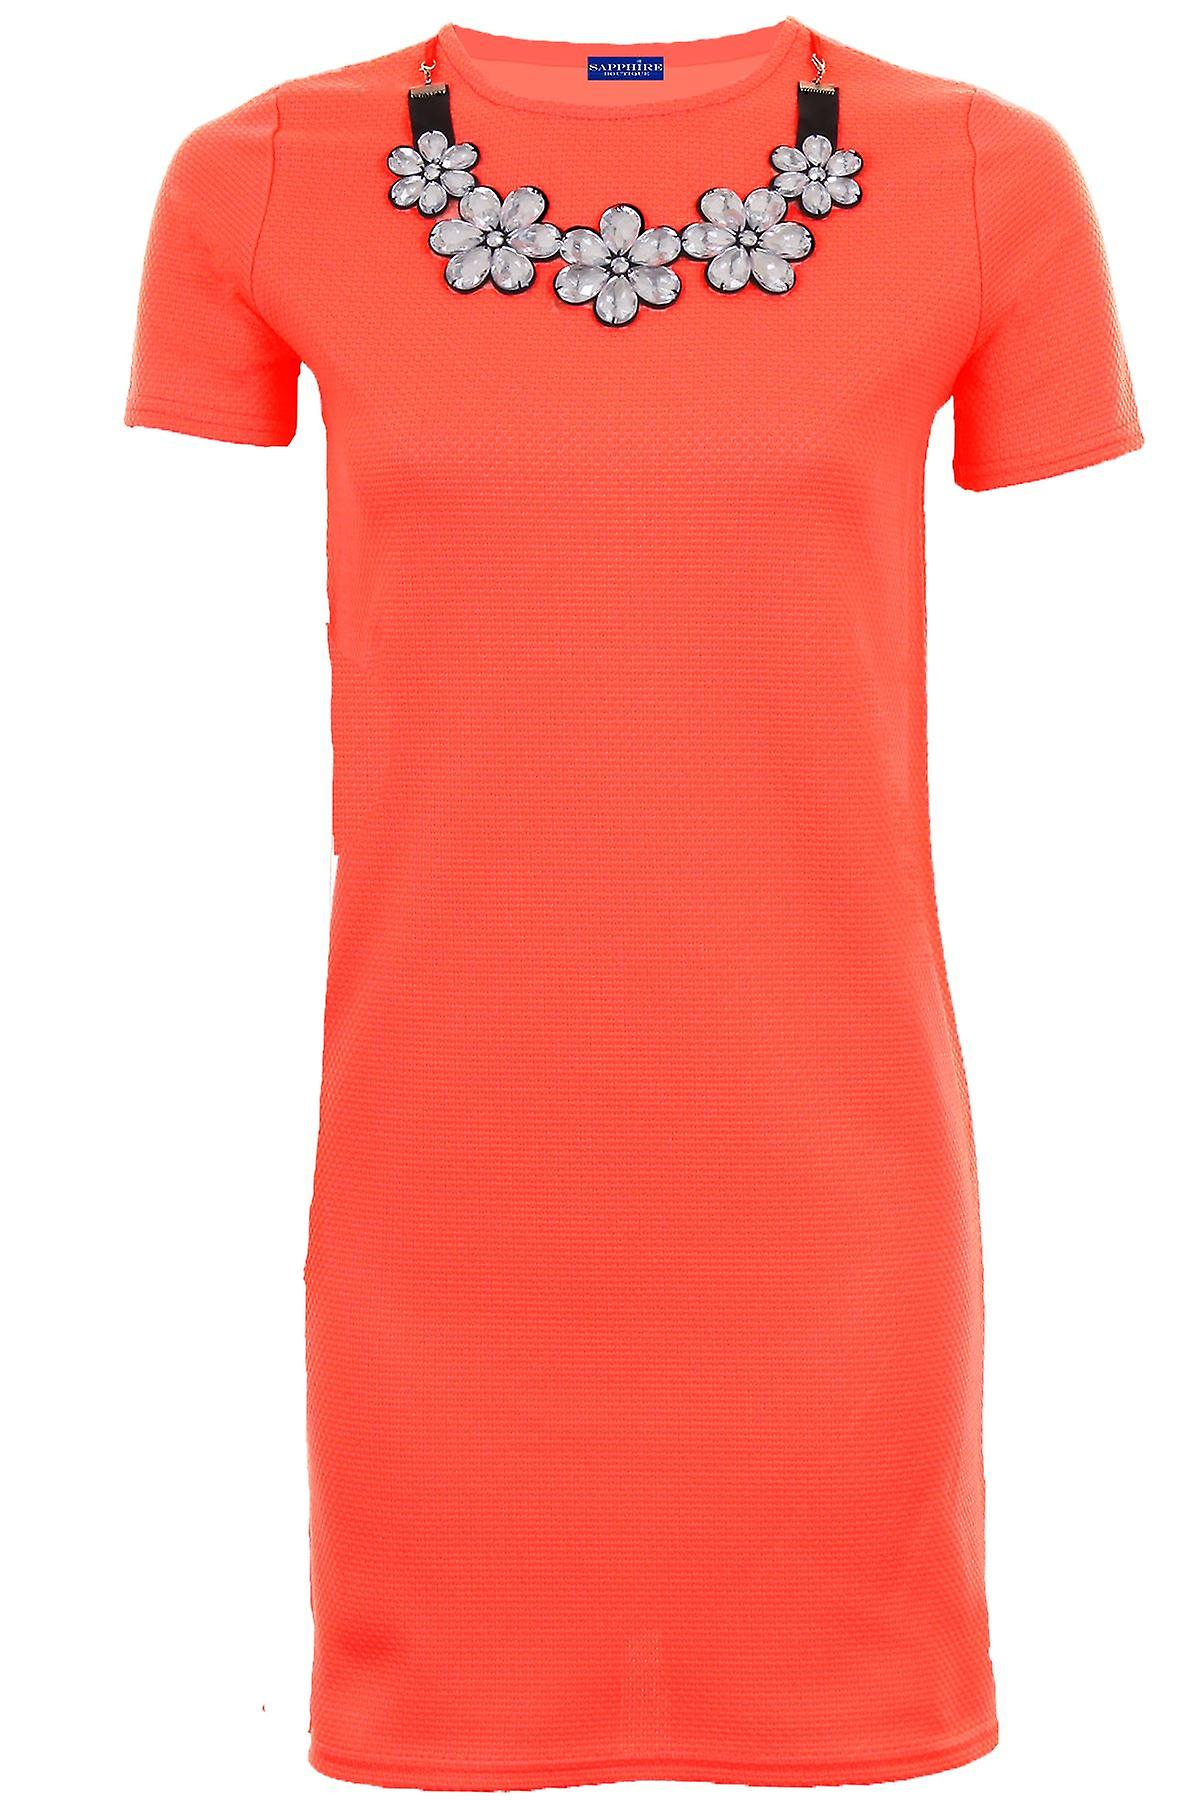 Ladies Short Sleeve Floral Jewelled Necklace Textured Women's Straight Dress